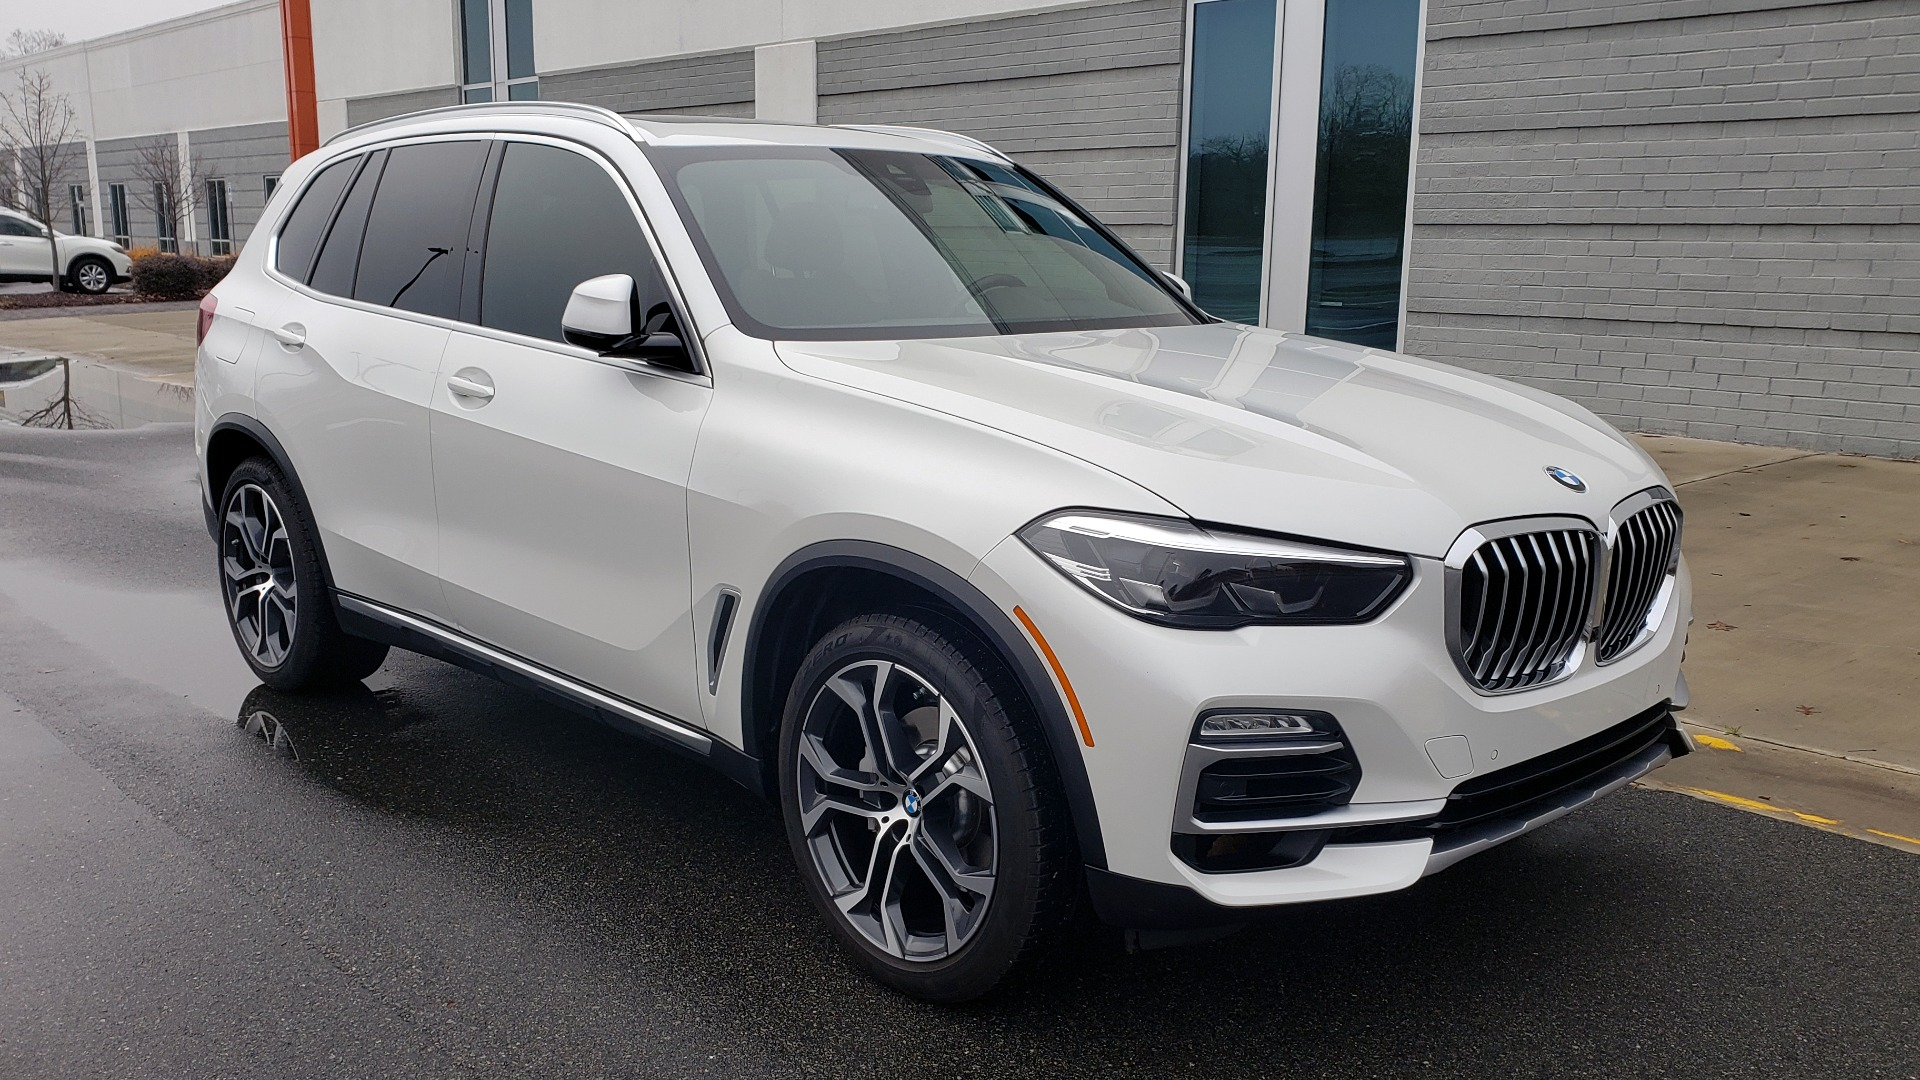 Used 2020 BMW X5 SDRIVE40I / CONV PKG / WIFI / NAV / PANO-ROOF / REARVIEW for sale Sold at Formula Imports in Charlotte NC 28227 4